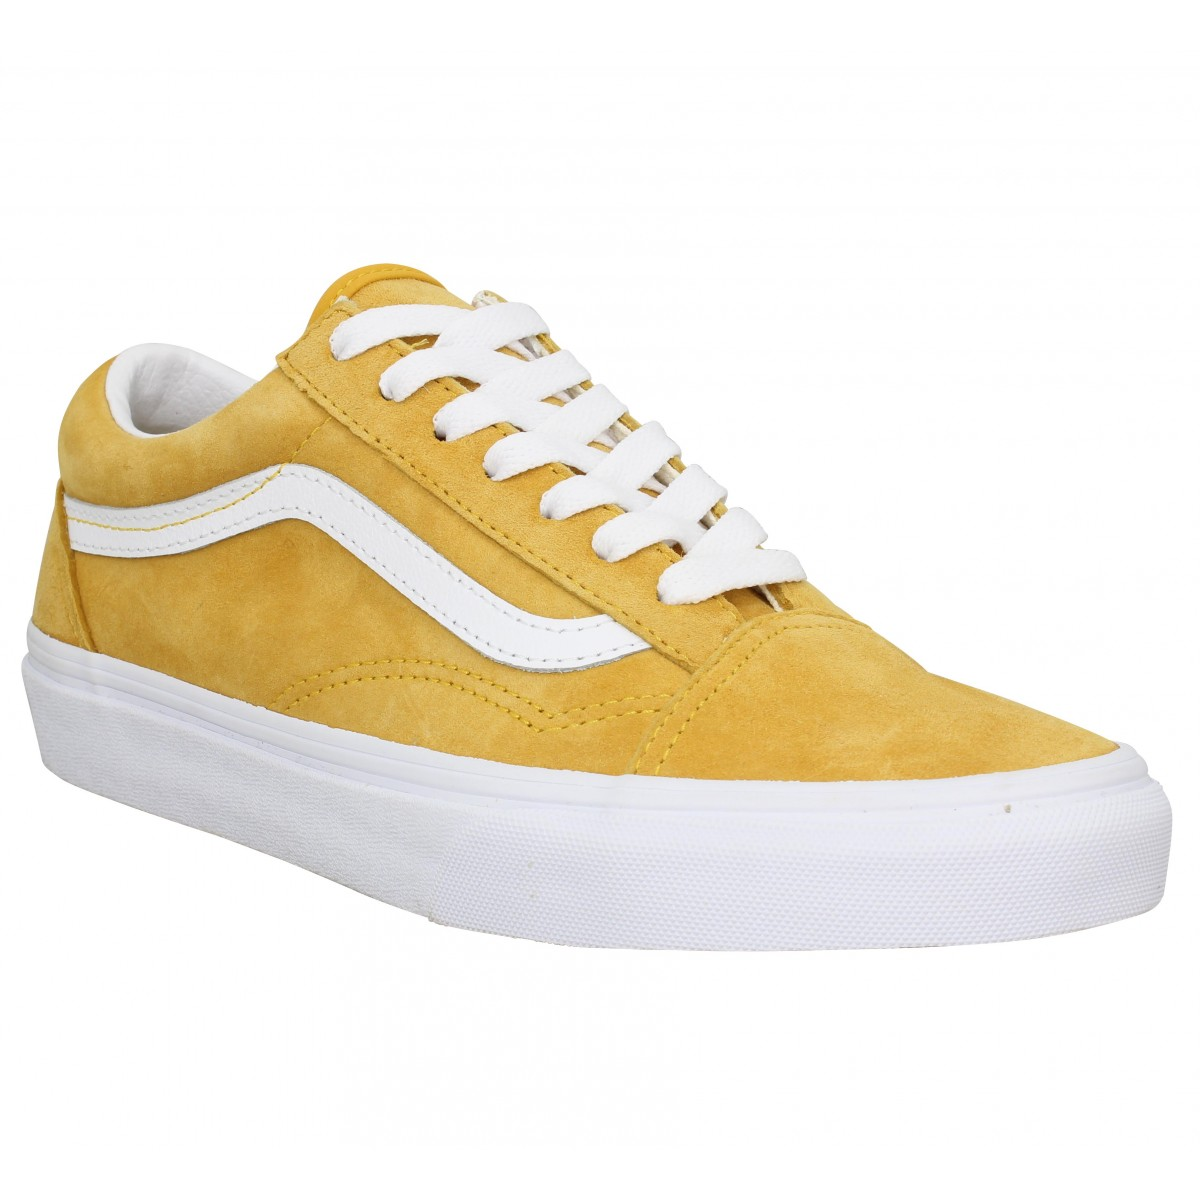 Baskets VANS Old Skool suede Jaune